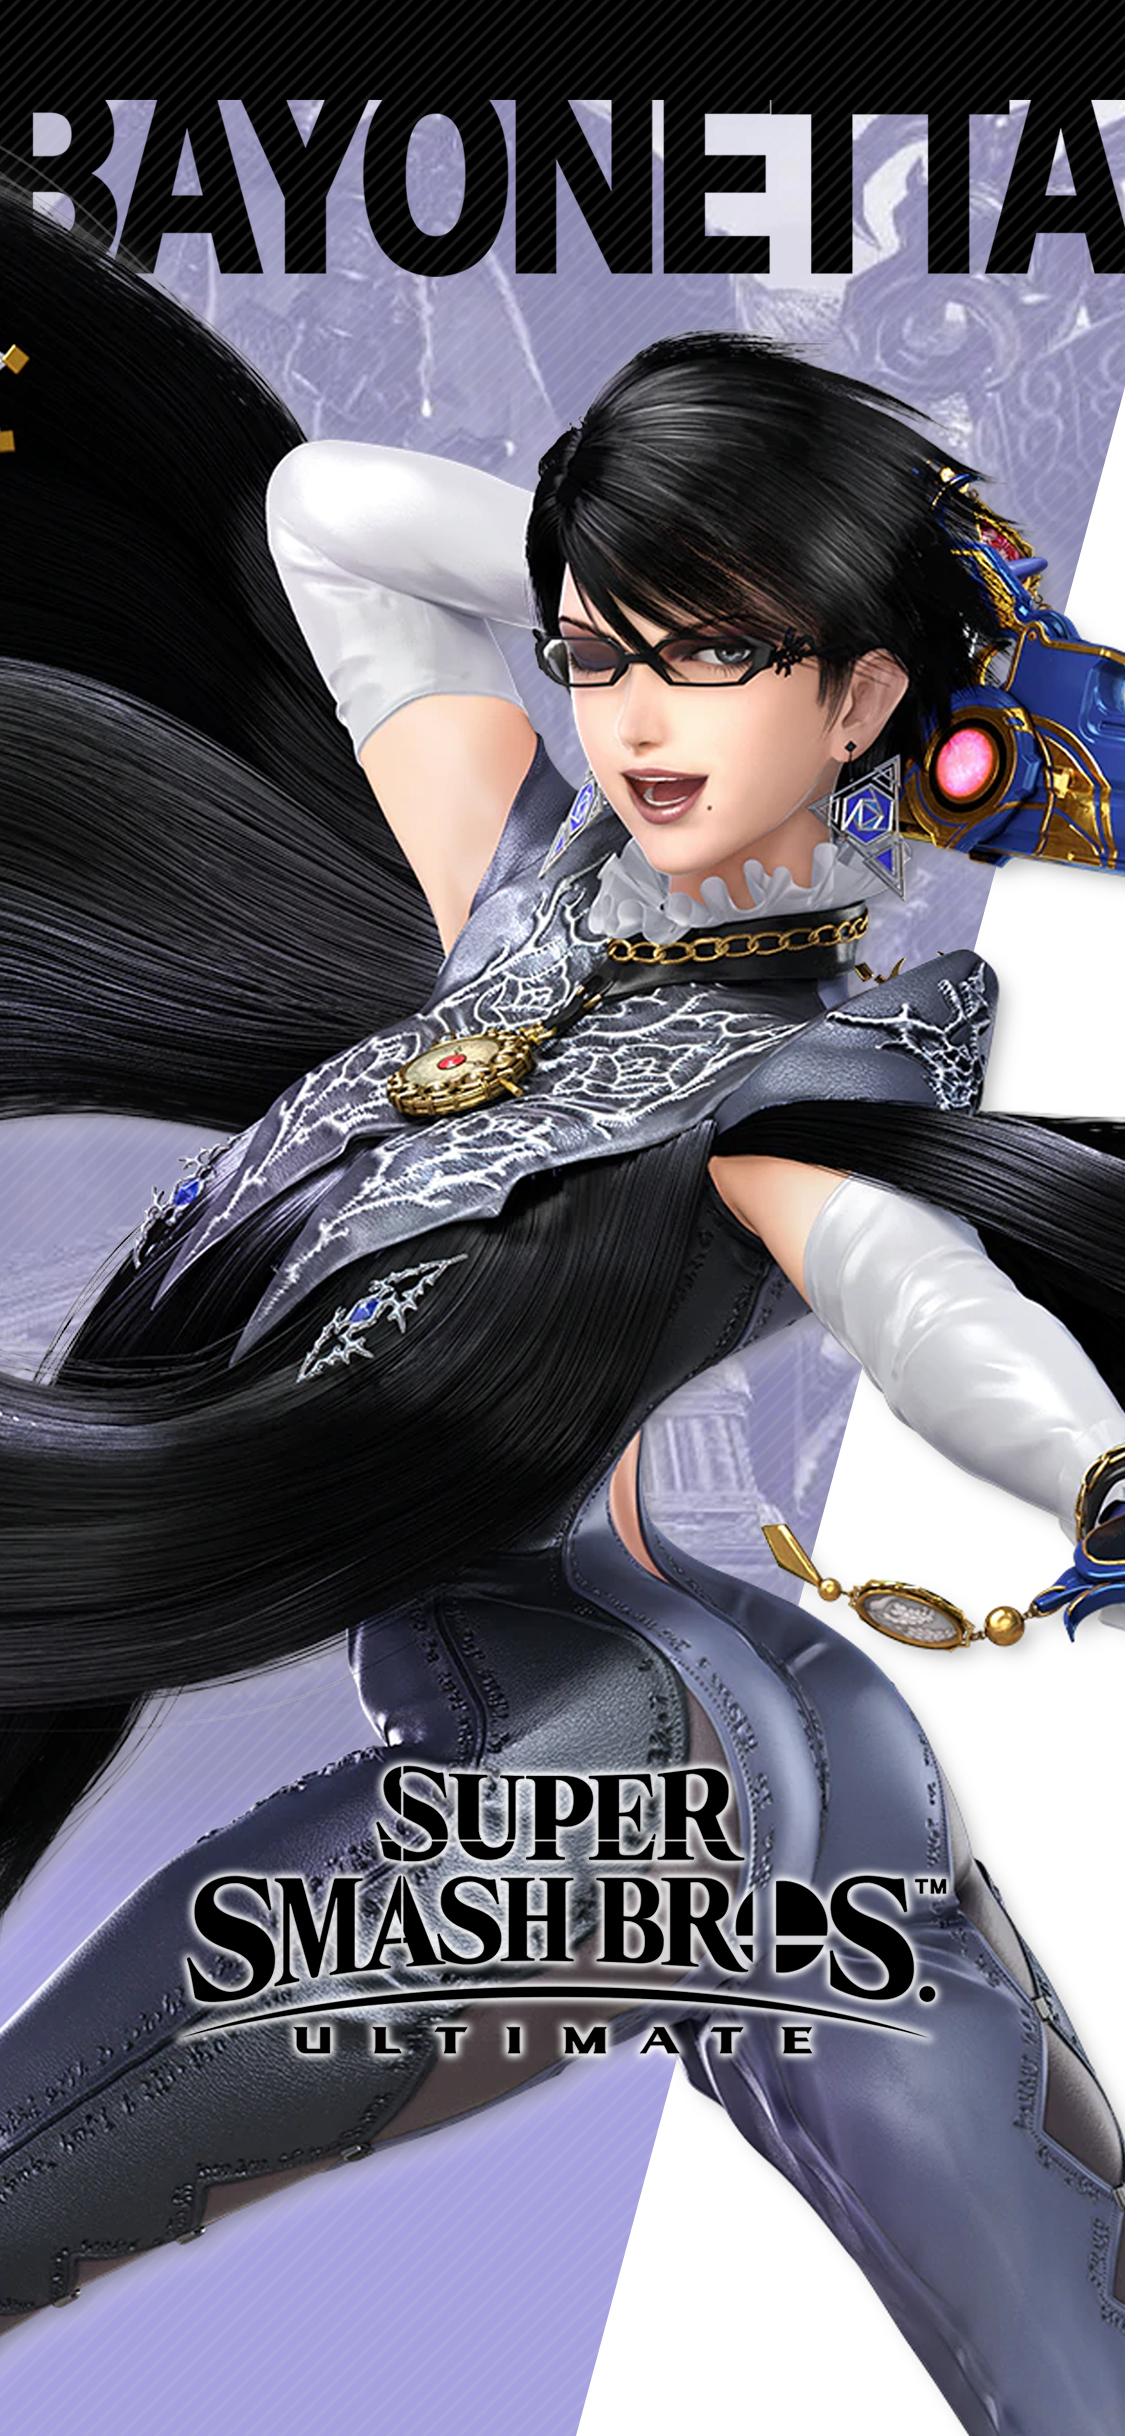 Super Smash Bros Ultimate Bayonetta Wallpapers Cat With